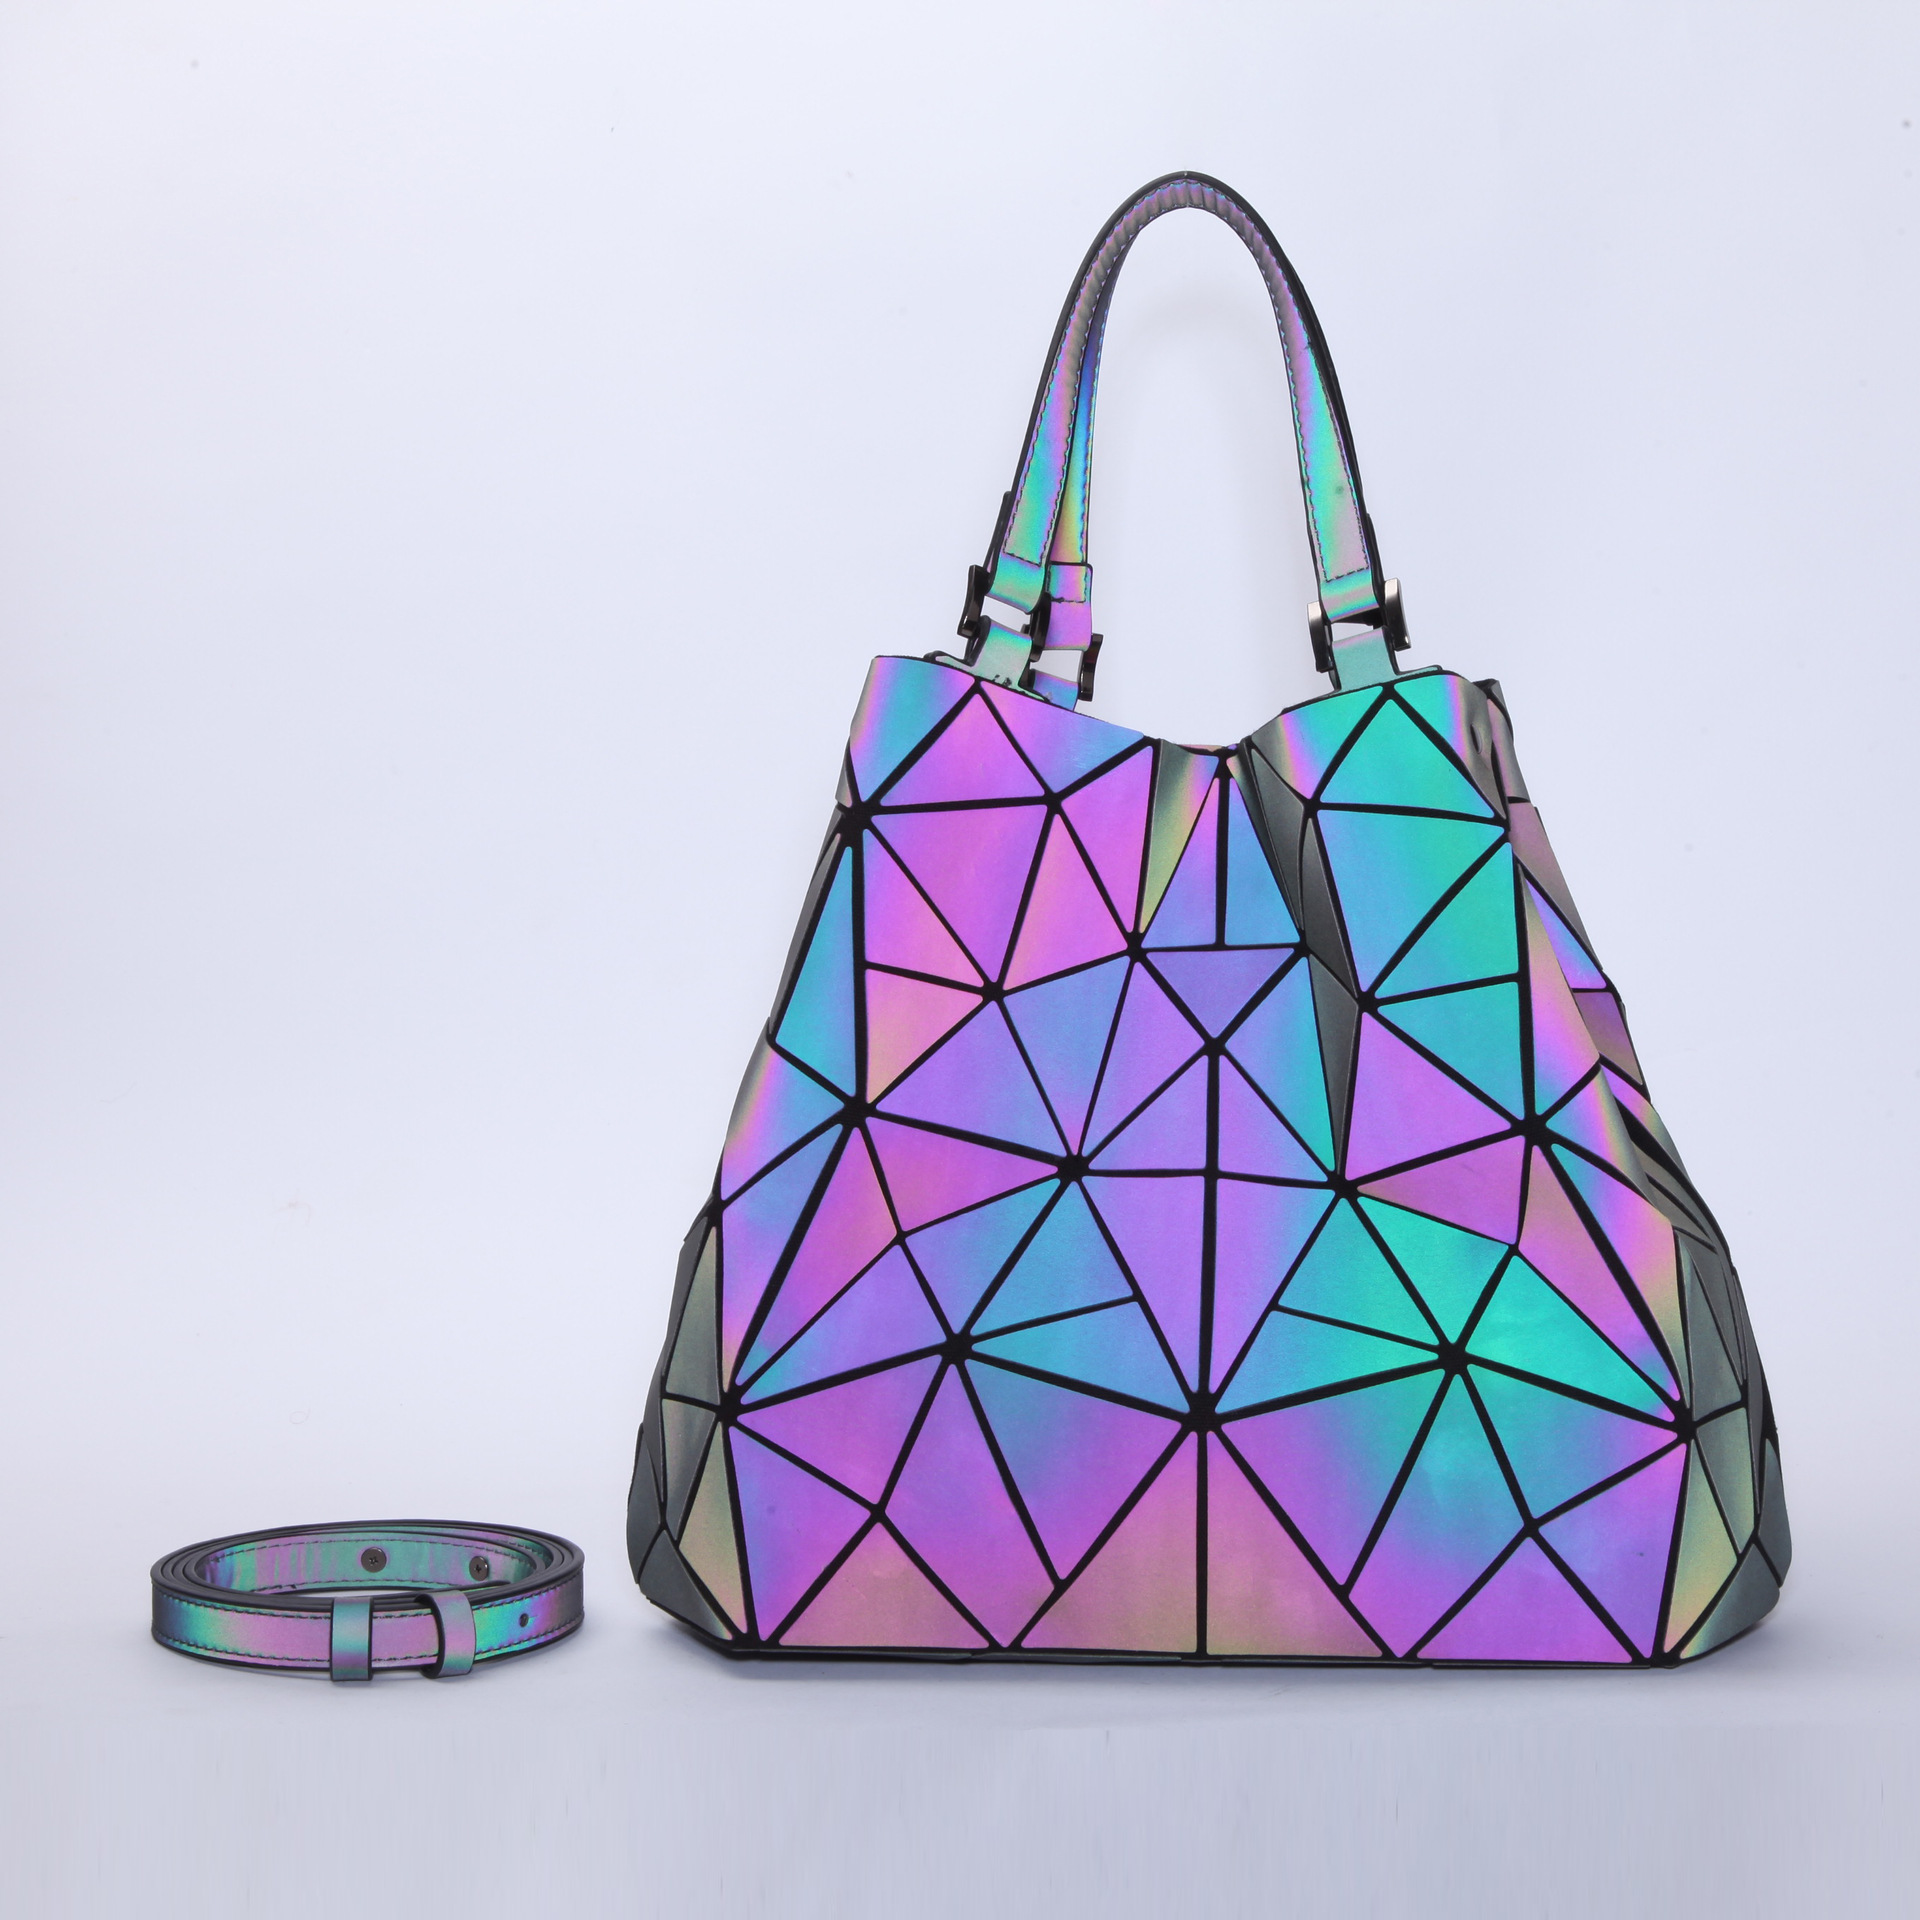 Crocrogo Women's Laser Holographic Geometric Reflective Shoulder Hand Tote Bag Ladies Fashion Travel Casual Shopping Beach Purse